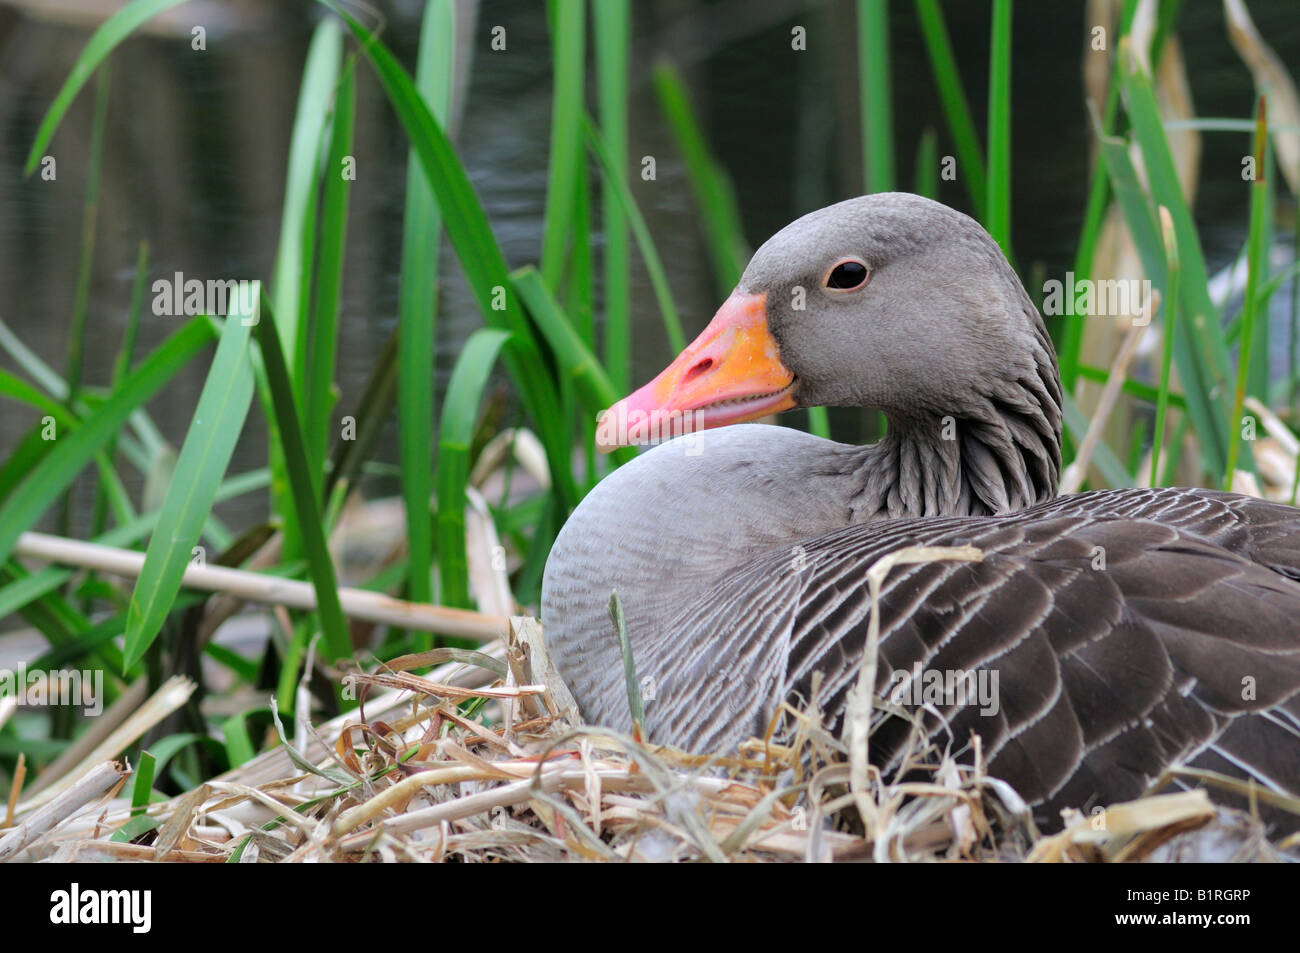 Greylag Goose (Anser anser) sitting on eggs in its nest made of reeds, North Rhine-Westphalia, Germany, Europe - Stock Image